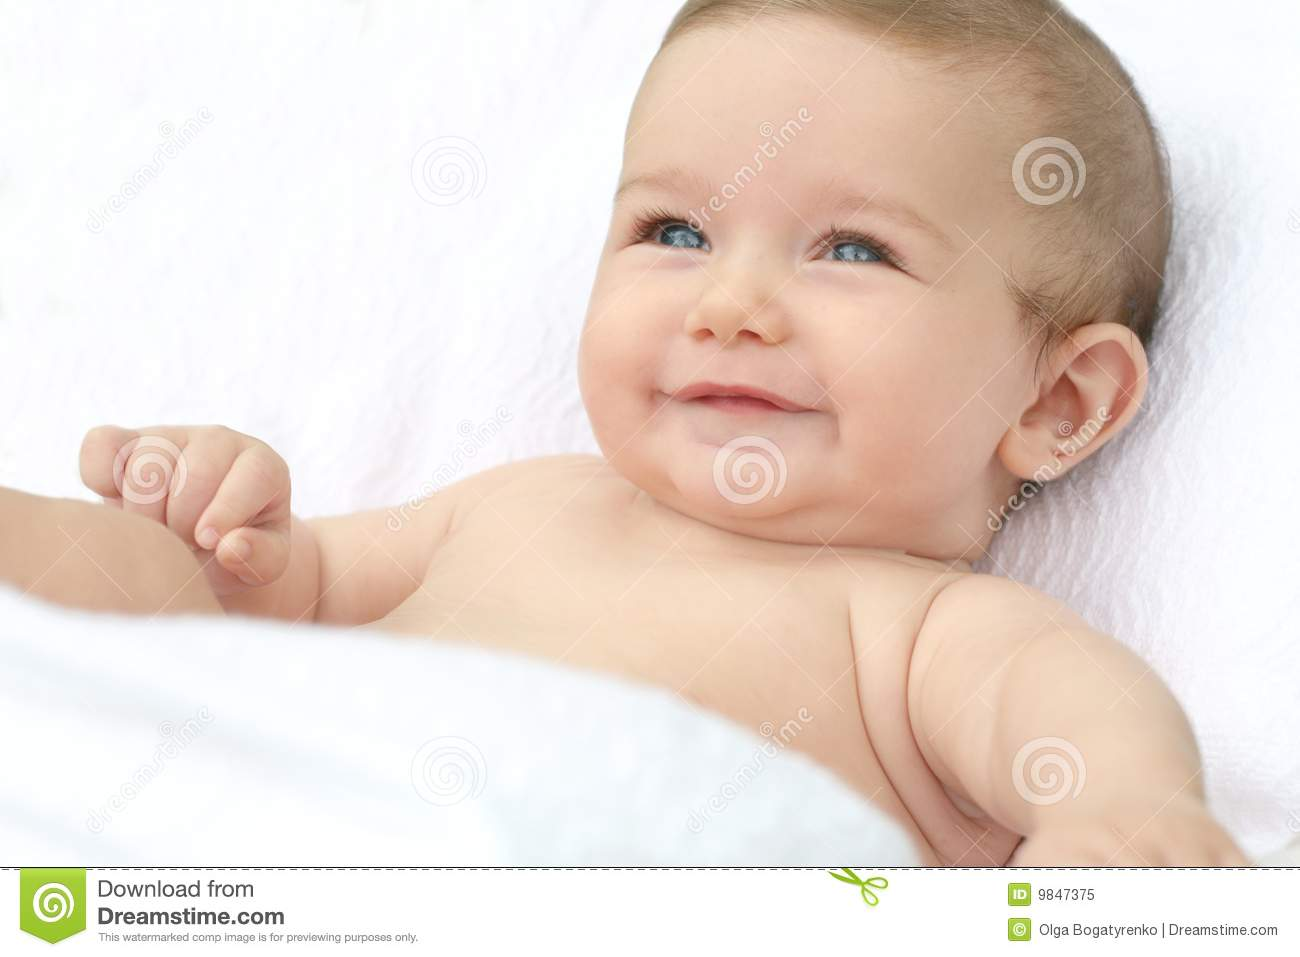 Smiling Infant Cute Smiling Babies Download Cute Smile Baby